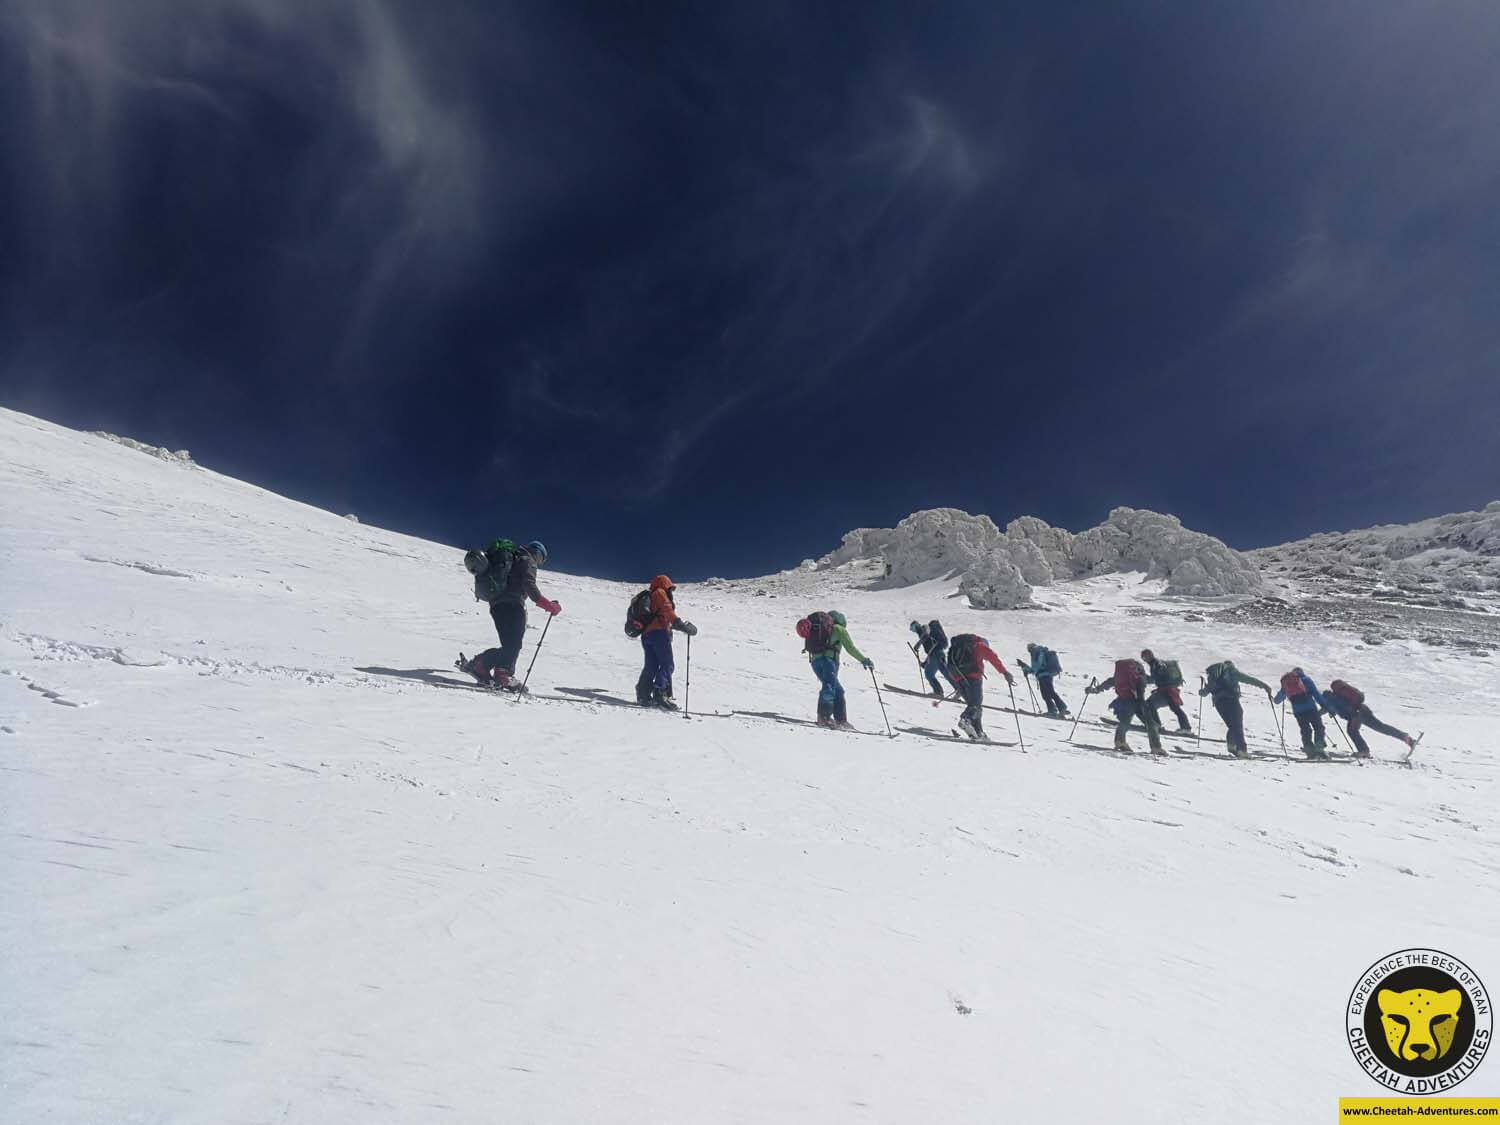 6-2 Damavand summit day, ski touring above 5000m, Damavand Ski tour